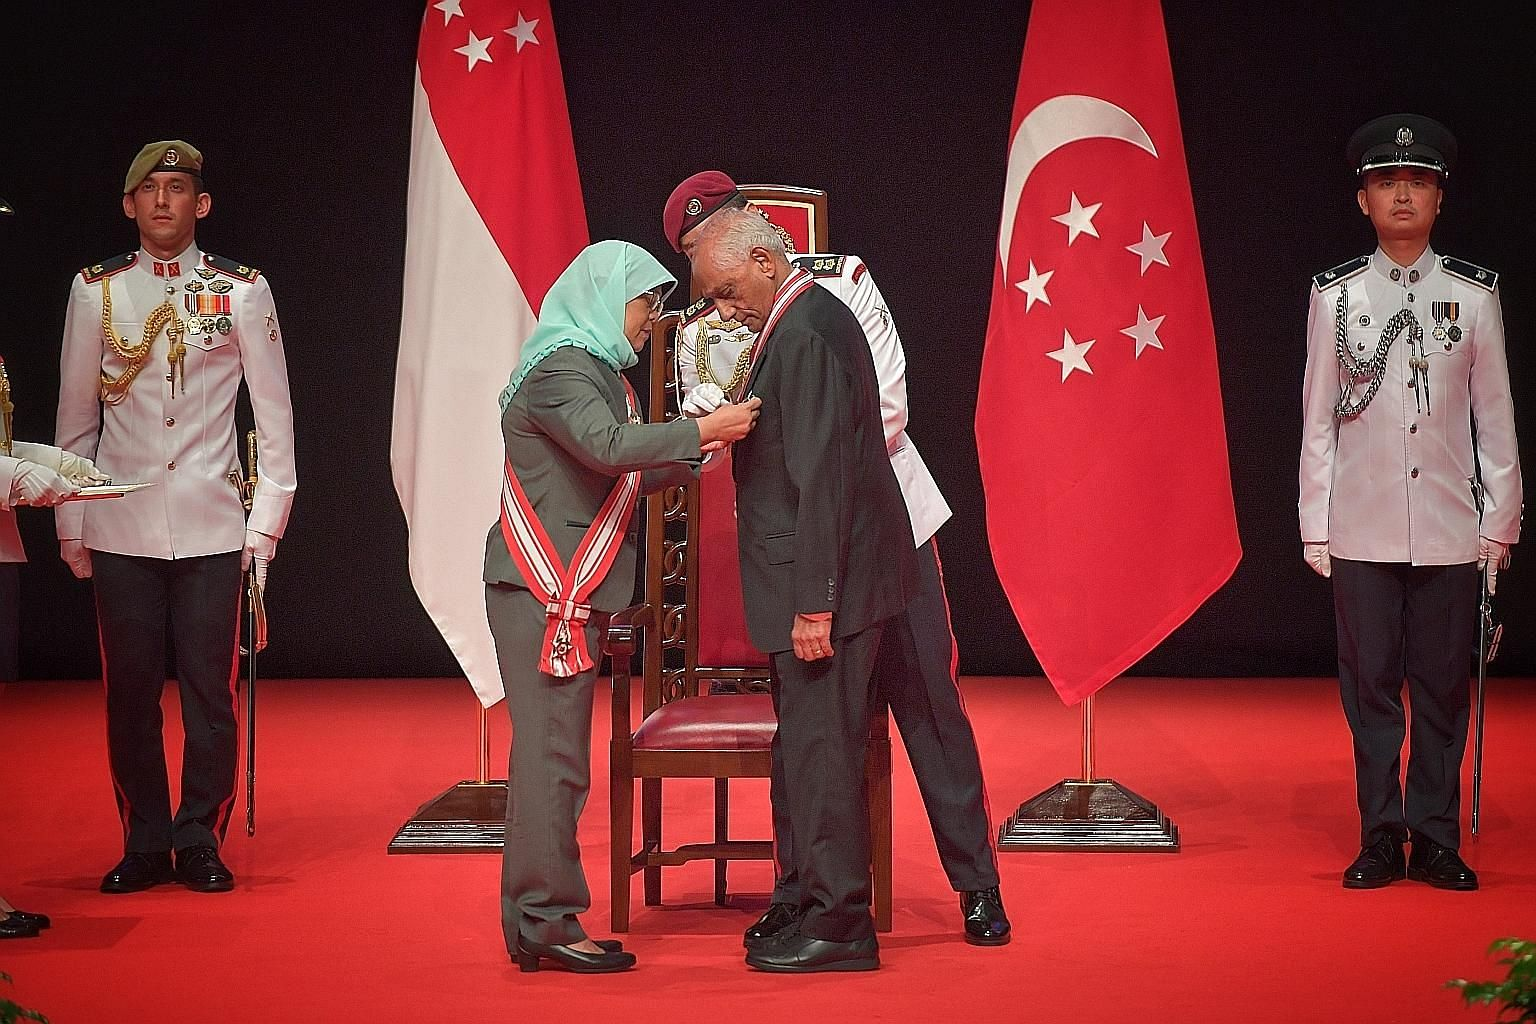 President Halimah Yacob presenting the Order of Temasek (With Distinction) to Mr J.Y. Pillay, who was the longest-serving chairman of the Council of Presidential Advisers, having led it from 2005 until January this year. ST PHOTO: ARIFFIN JAMAR